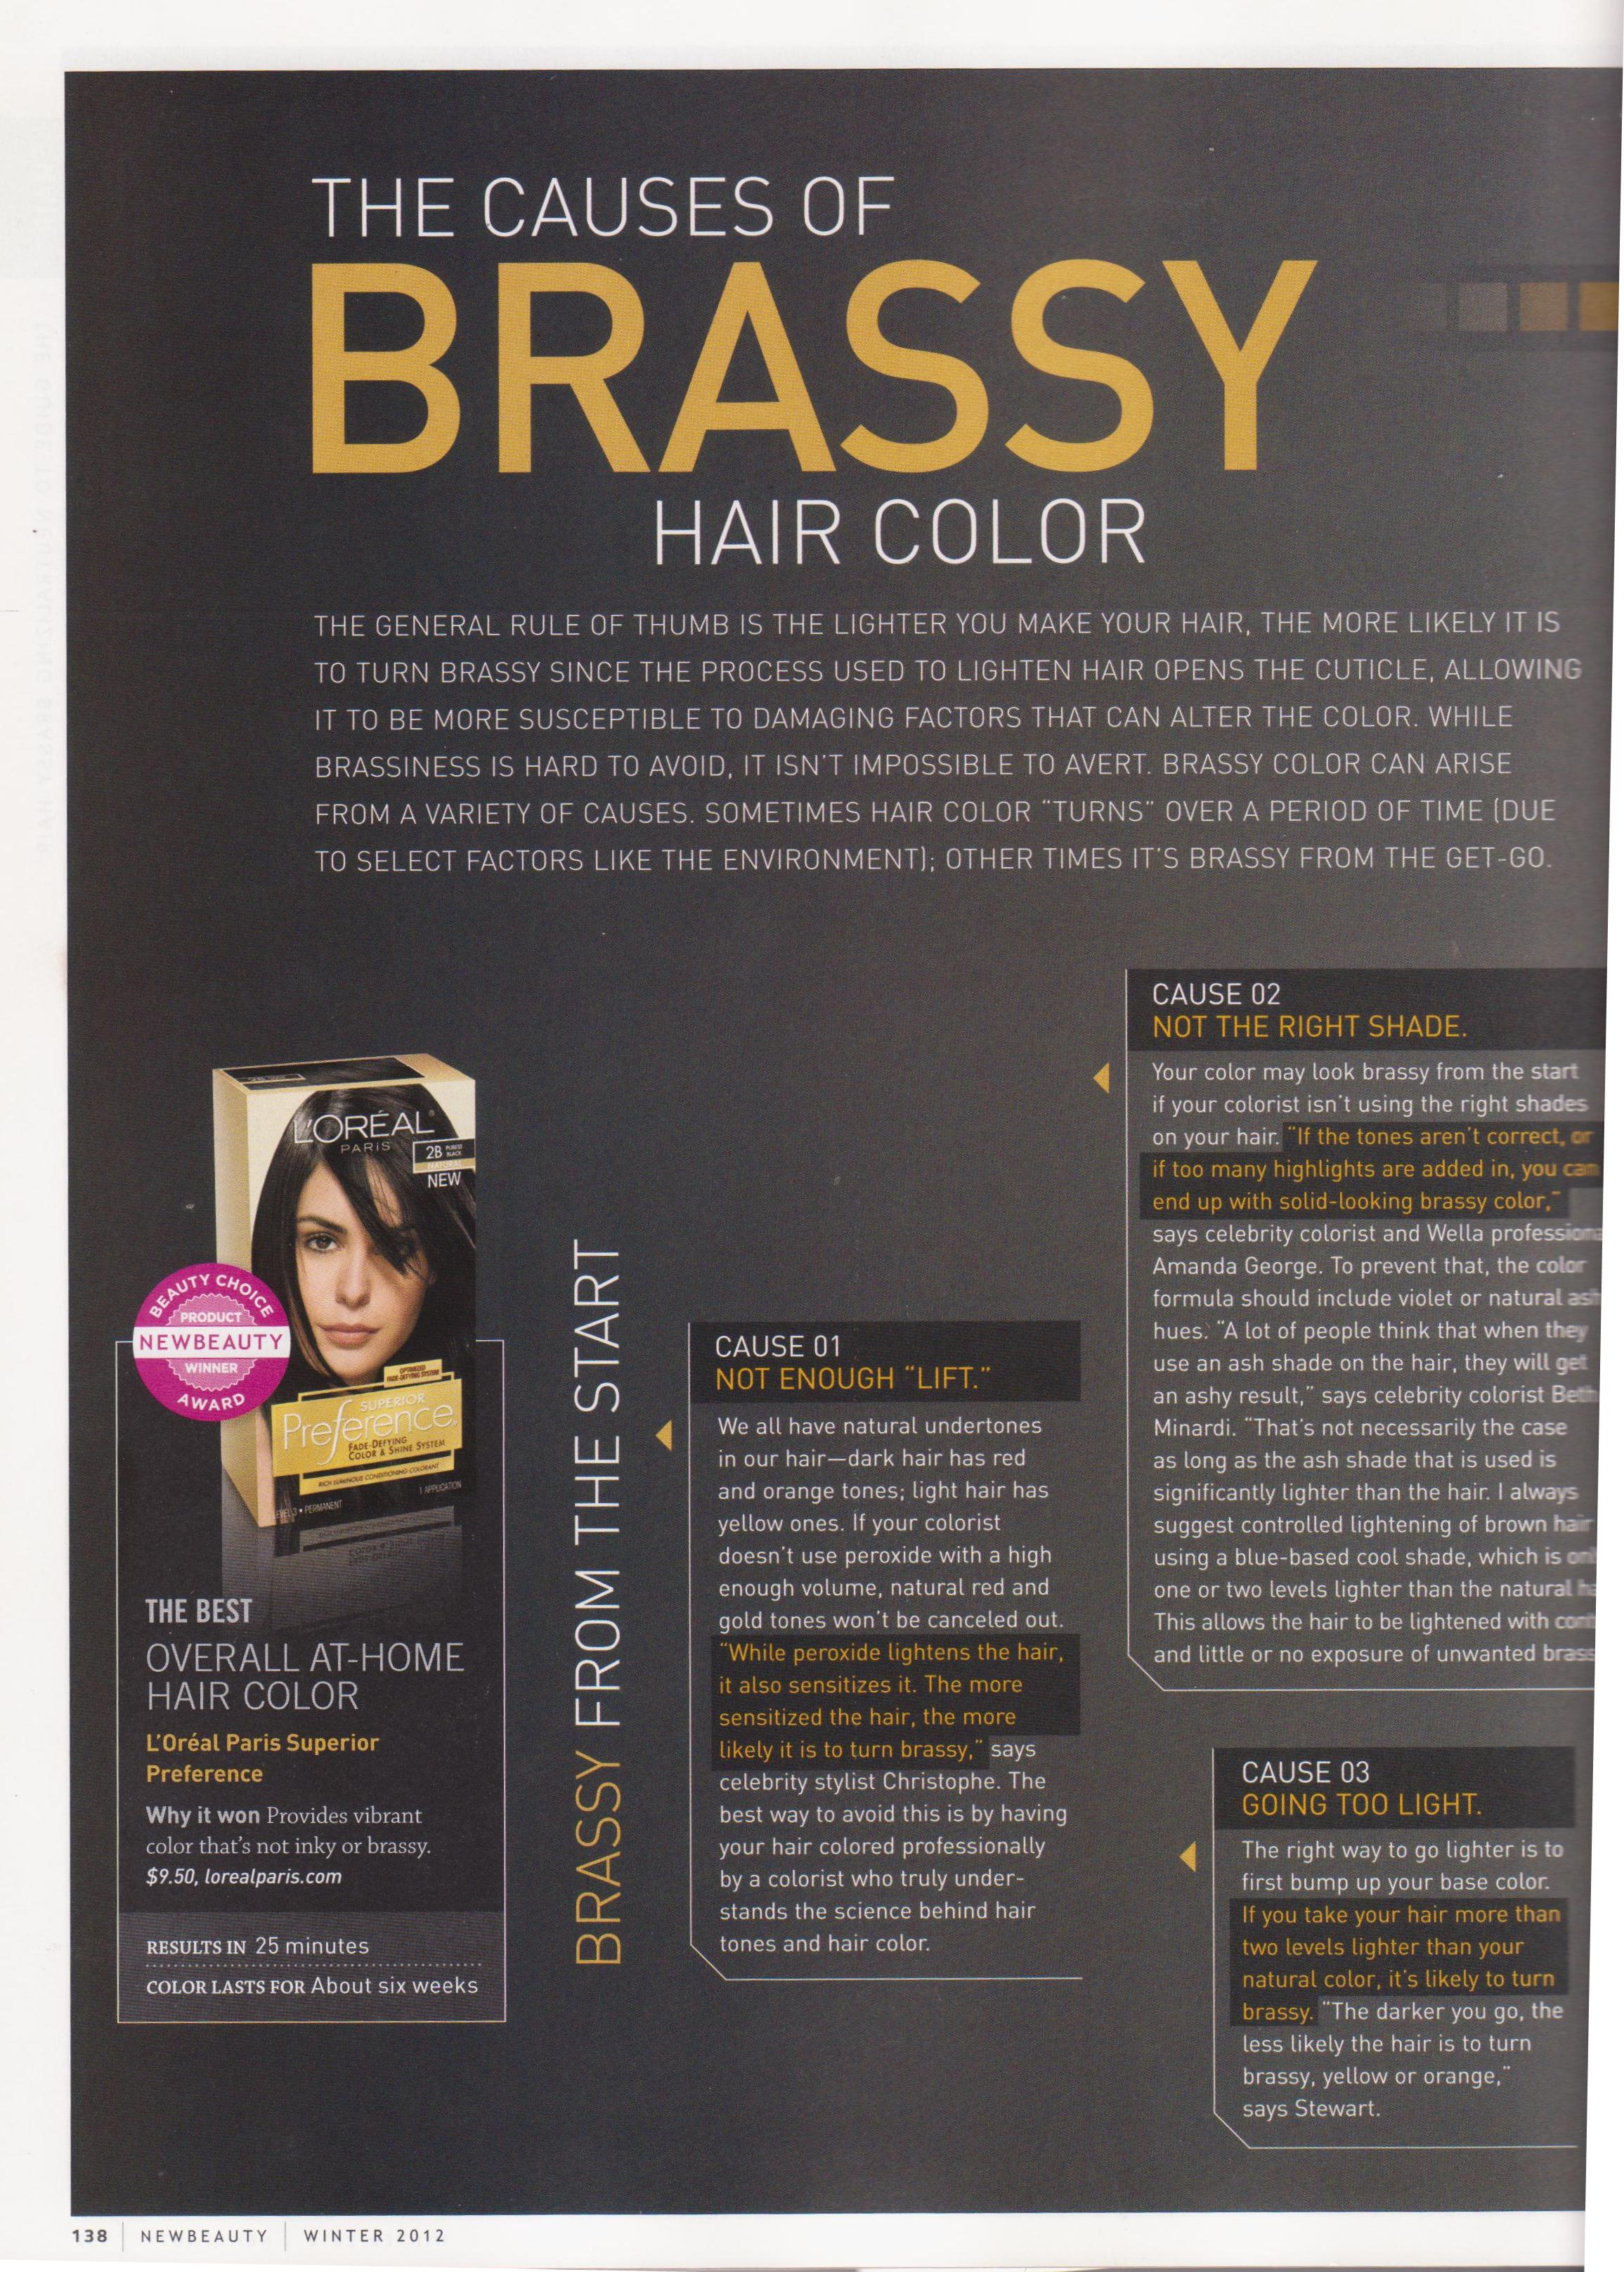 Causes of Brassy Hair Color | Neil George